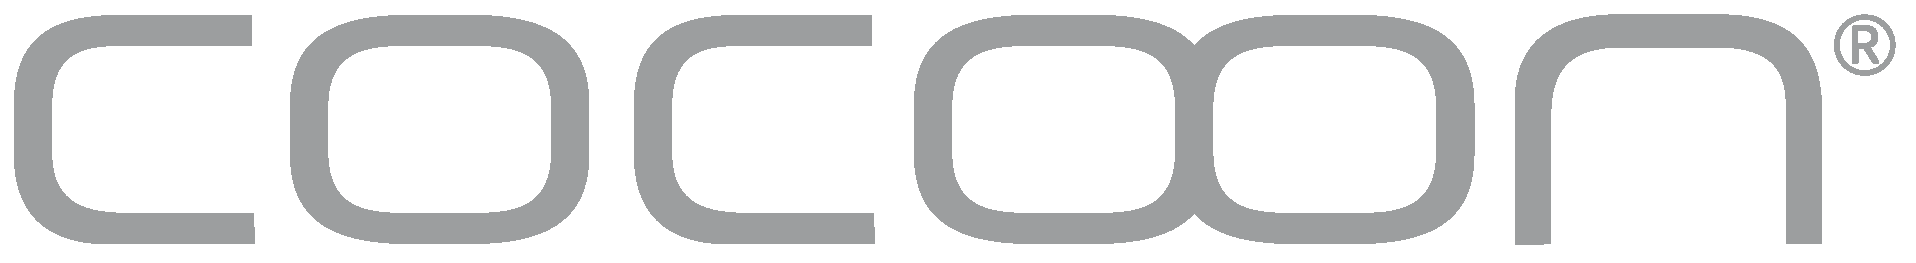 logo_Cocoon.png